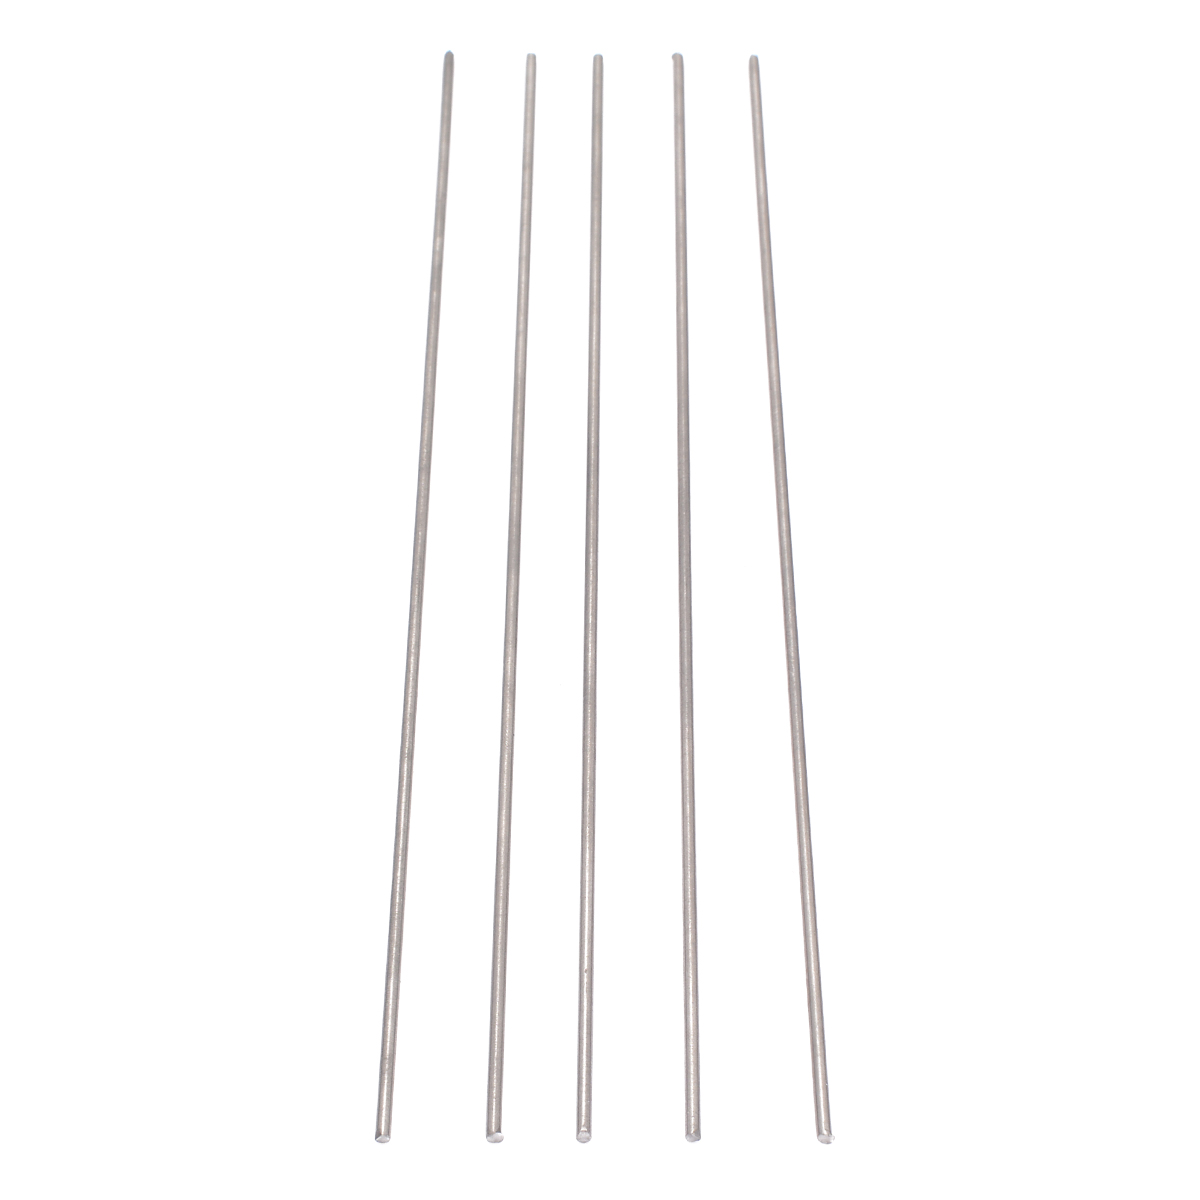 5pcs <font><b>2mm</b></font> Diam Ti GR5 Metal <font><b>Rod</b></font> 250mm Titanium Round Bars Practical Accessories for Industry Welding Tools image